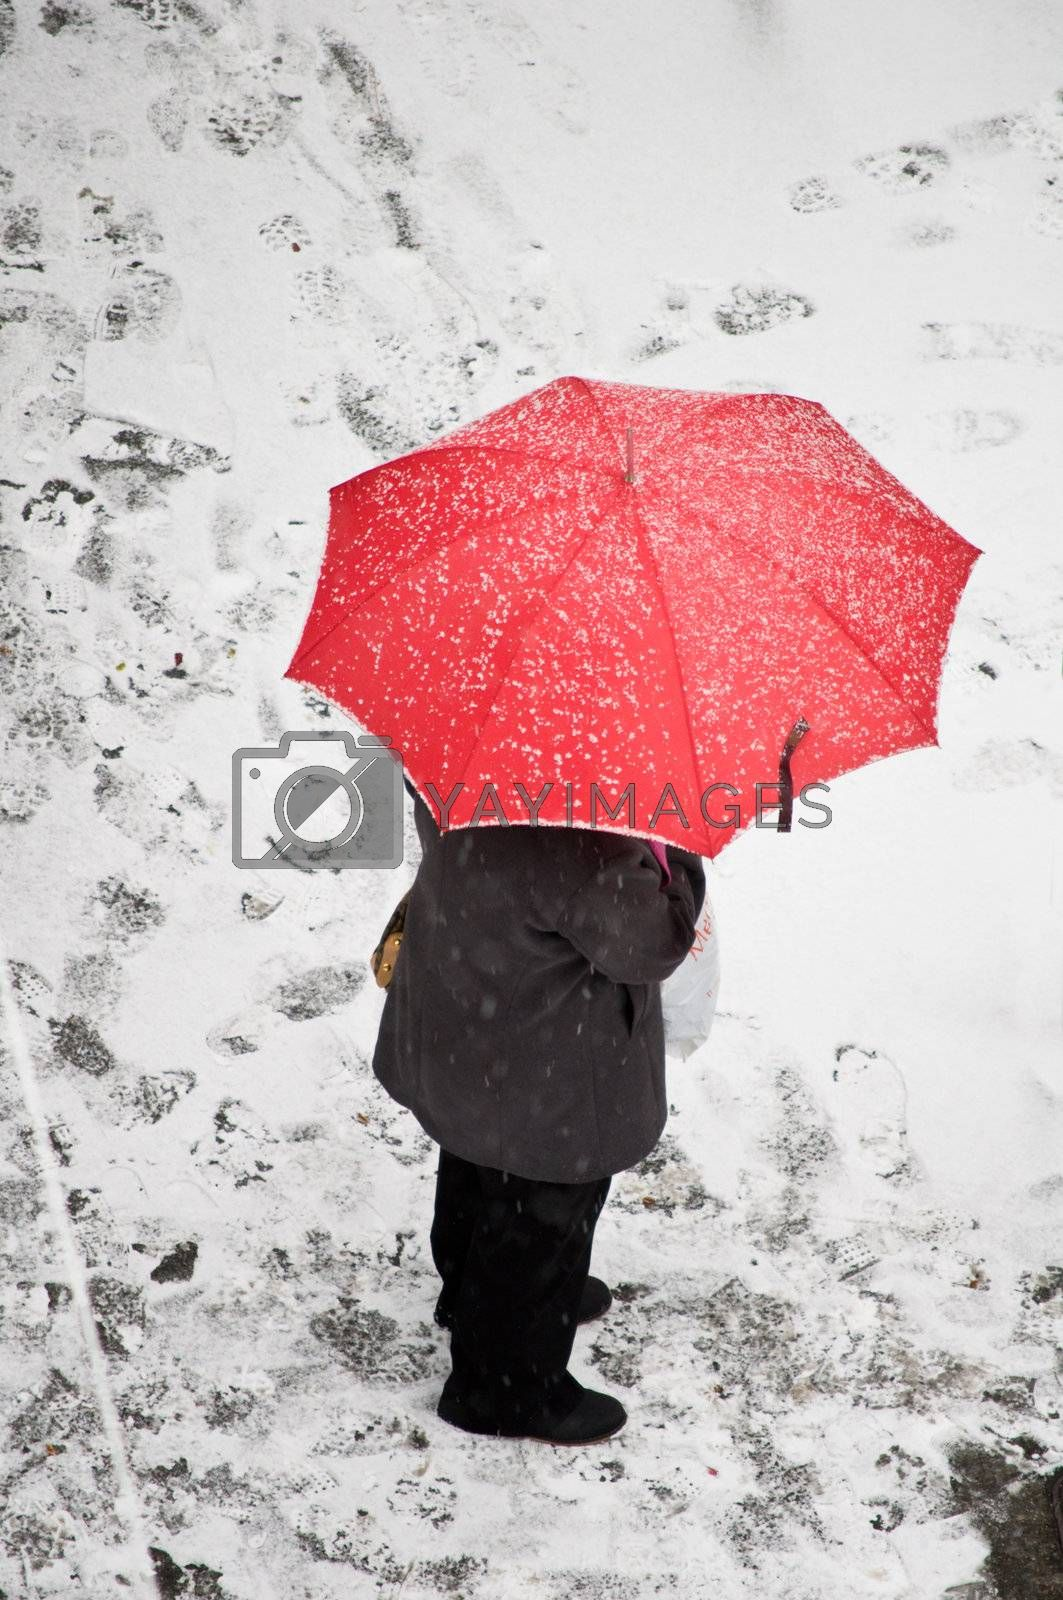 Woman with red umbrella standing on a snow covered sidewalk